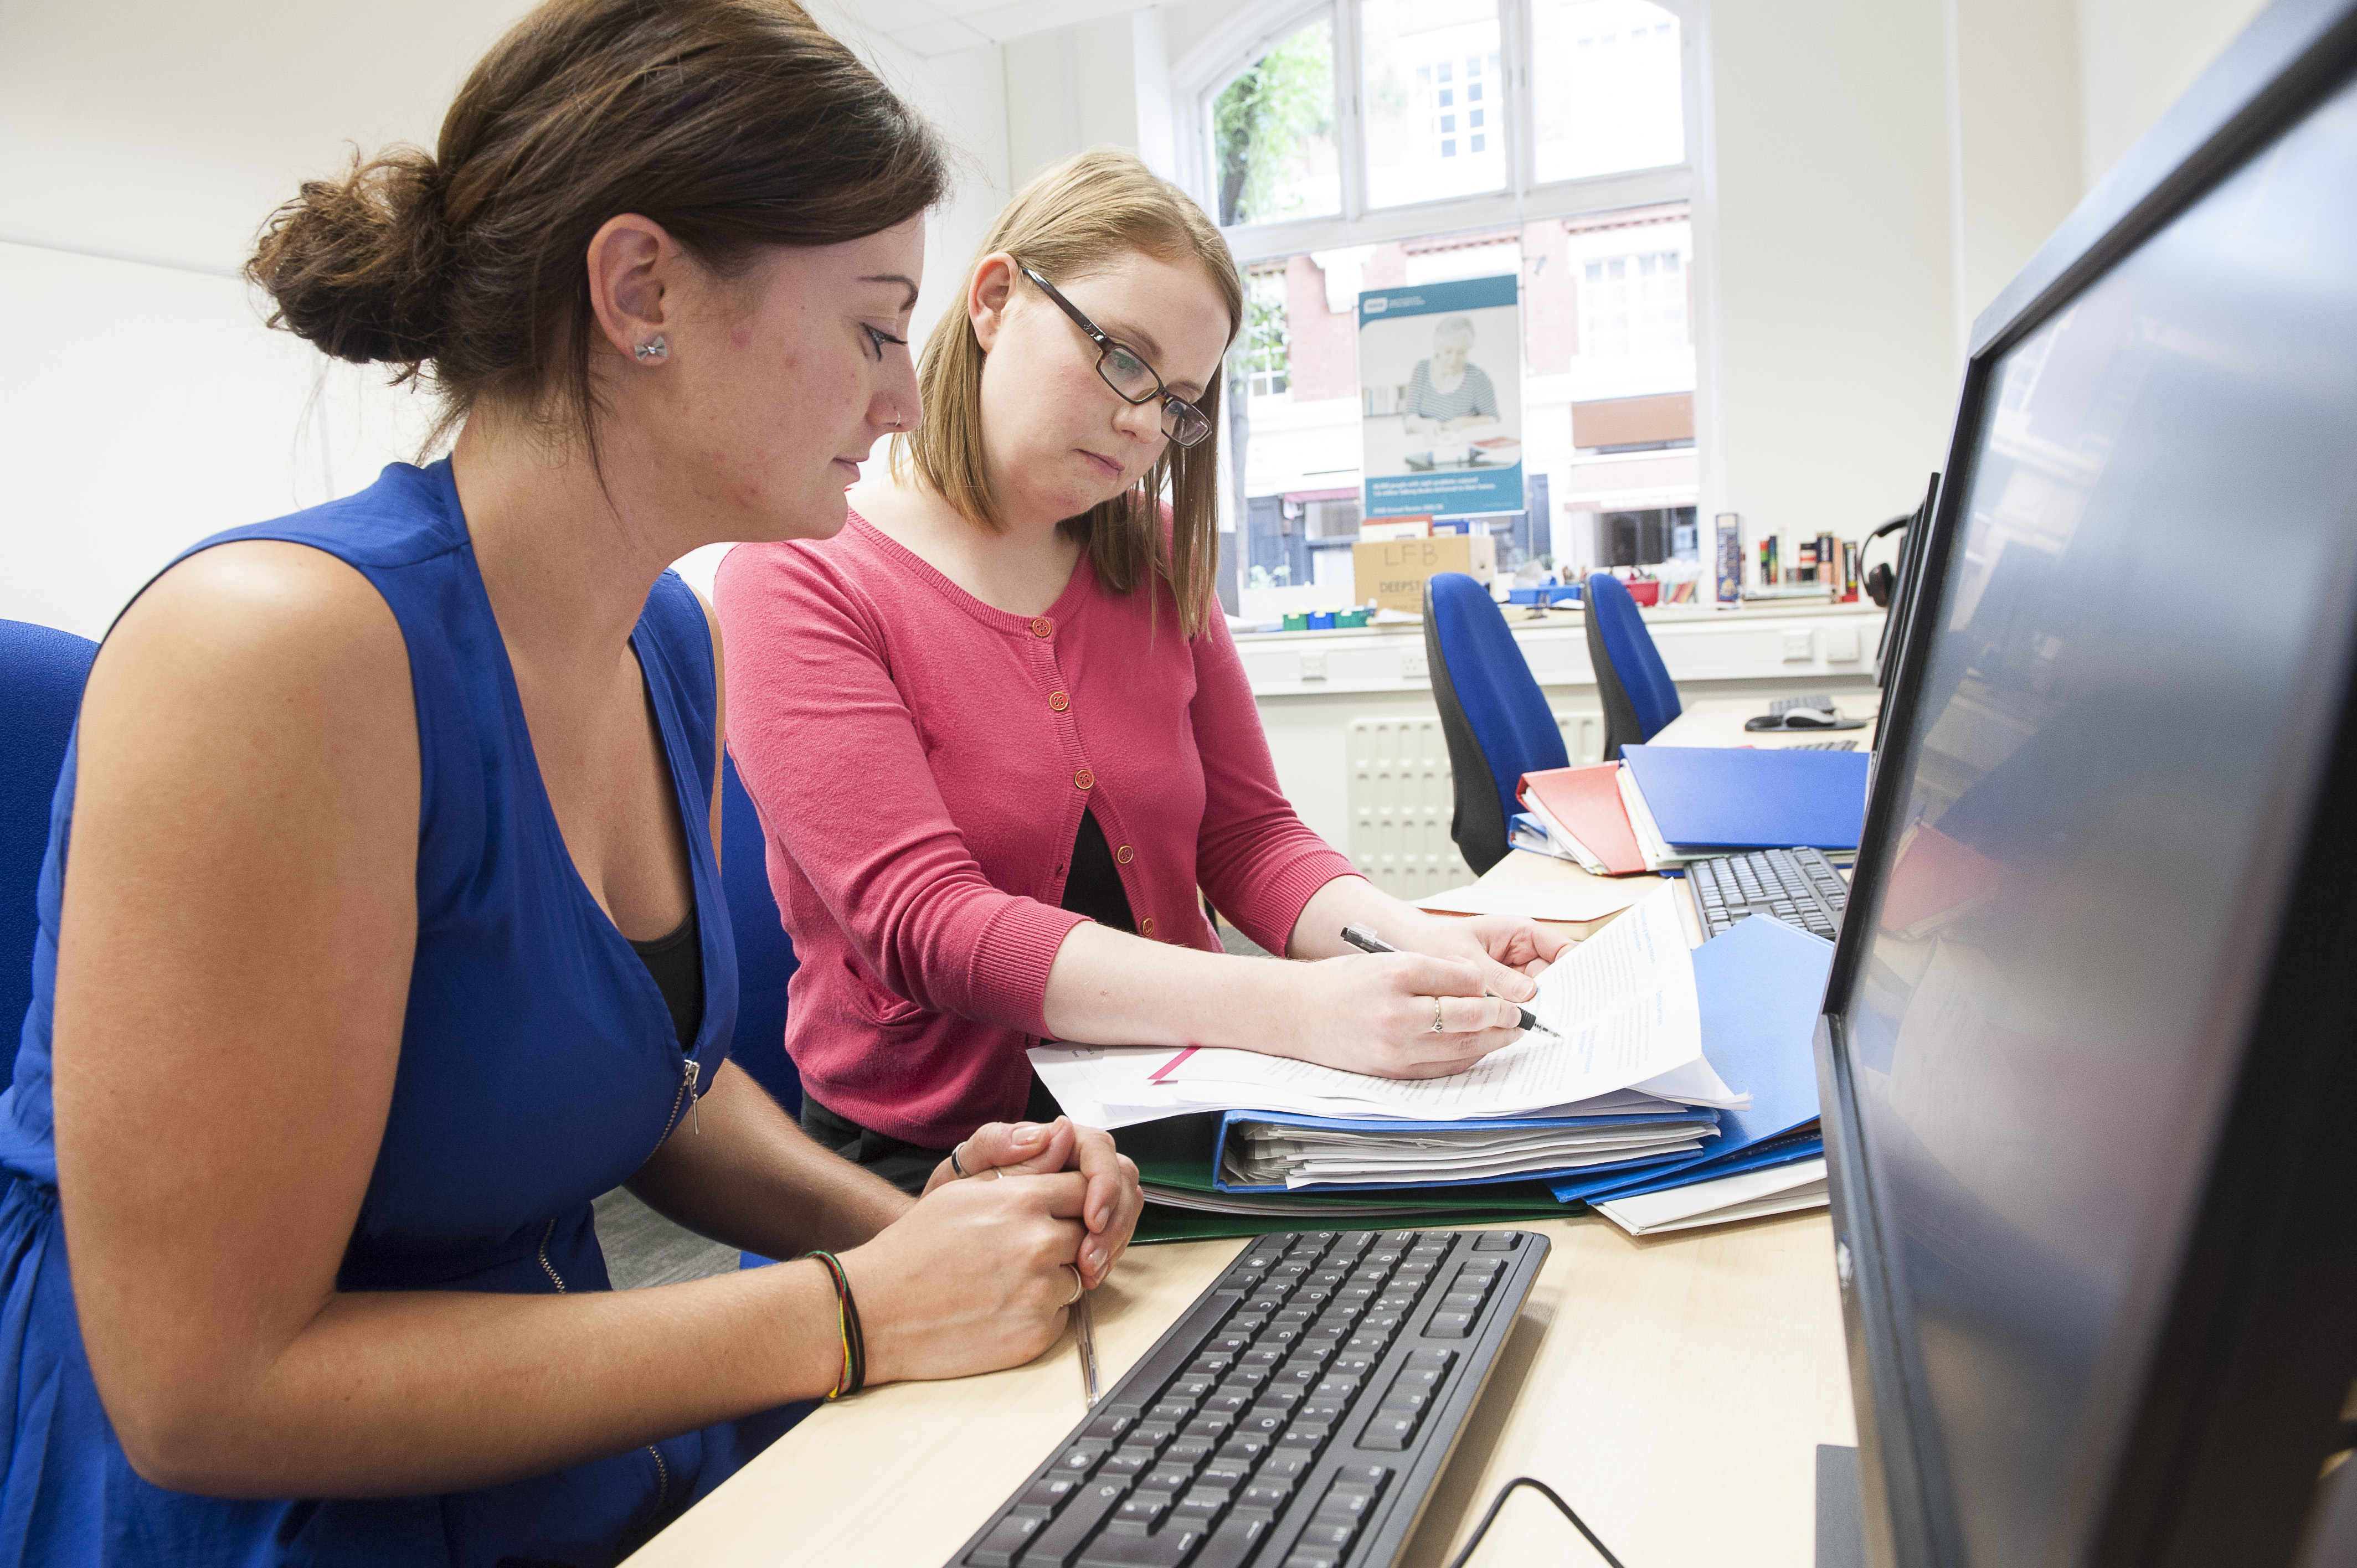 Course Image DACPD93-0520 - Developing Writing Skills in Adults with Dyslexia